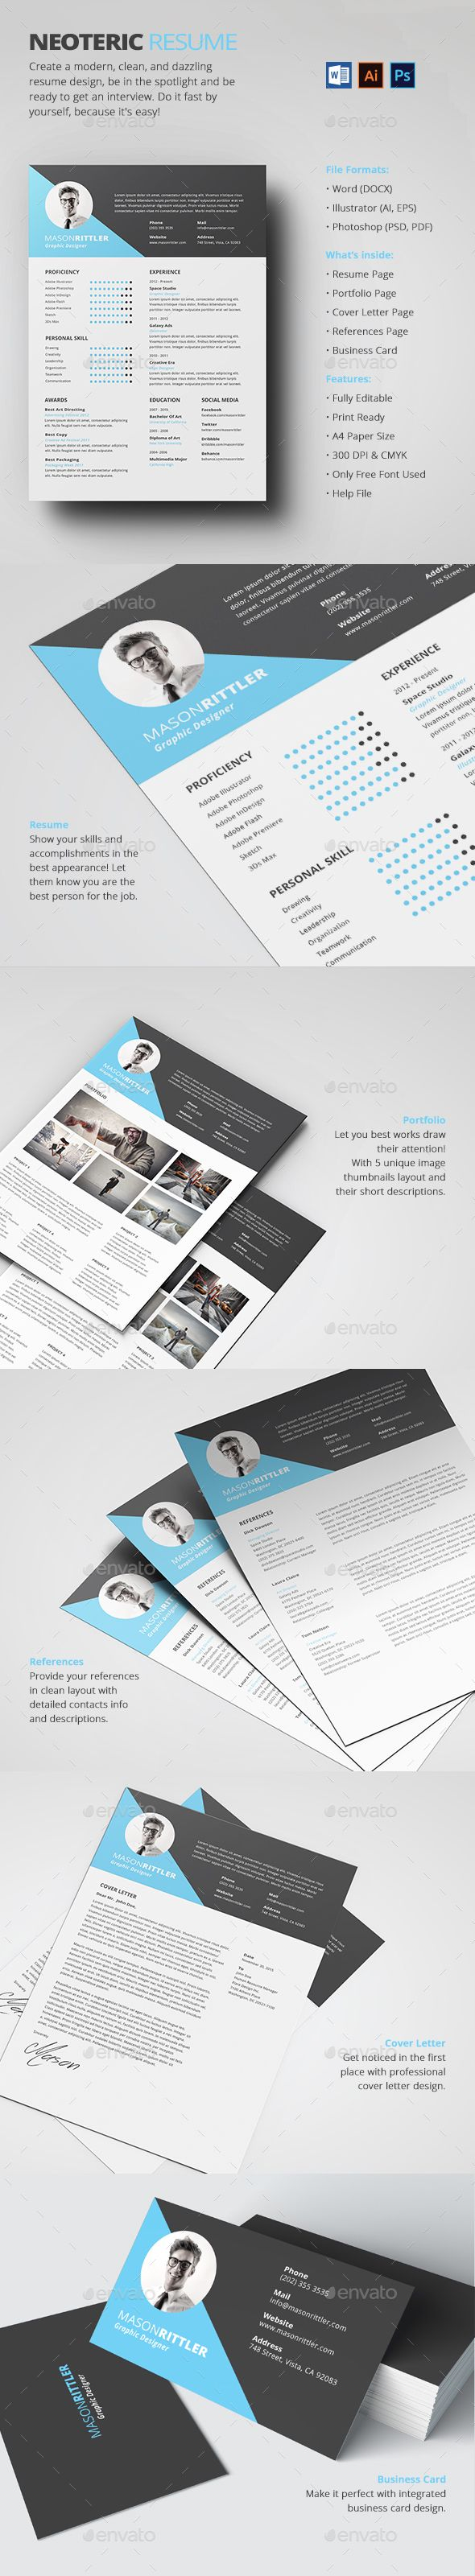 Neoteric Resume  Graphics Simple Resume Template And Simple Resume